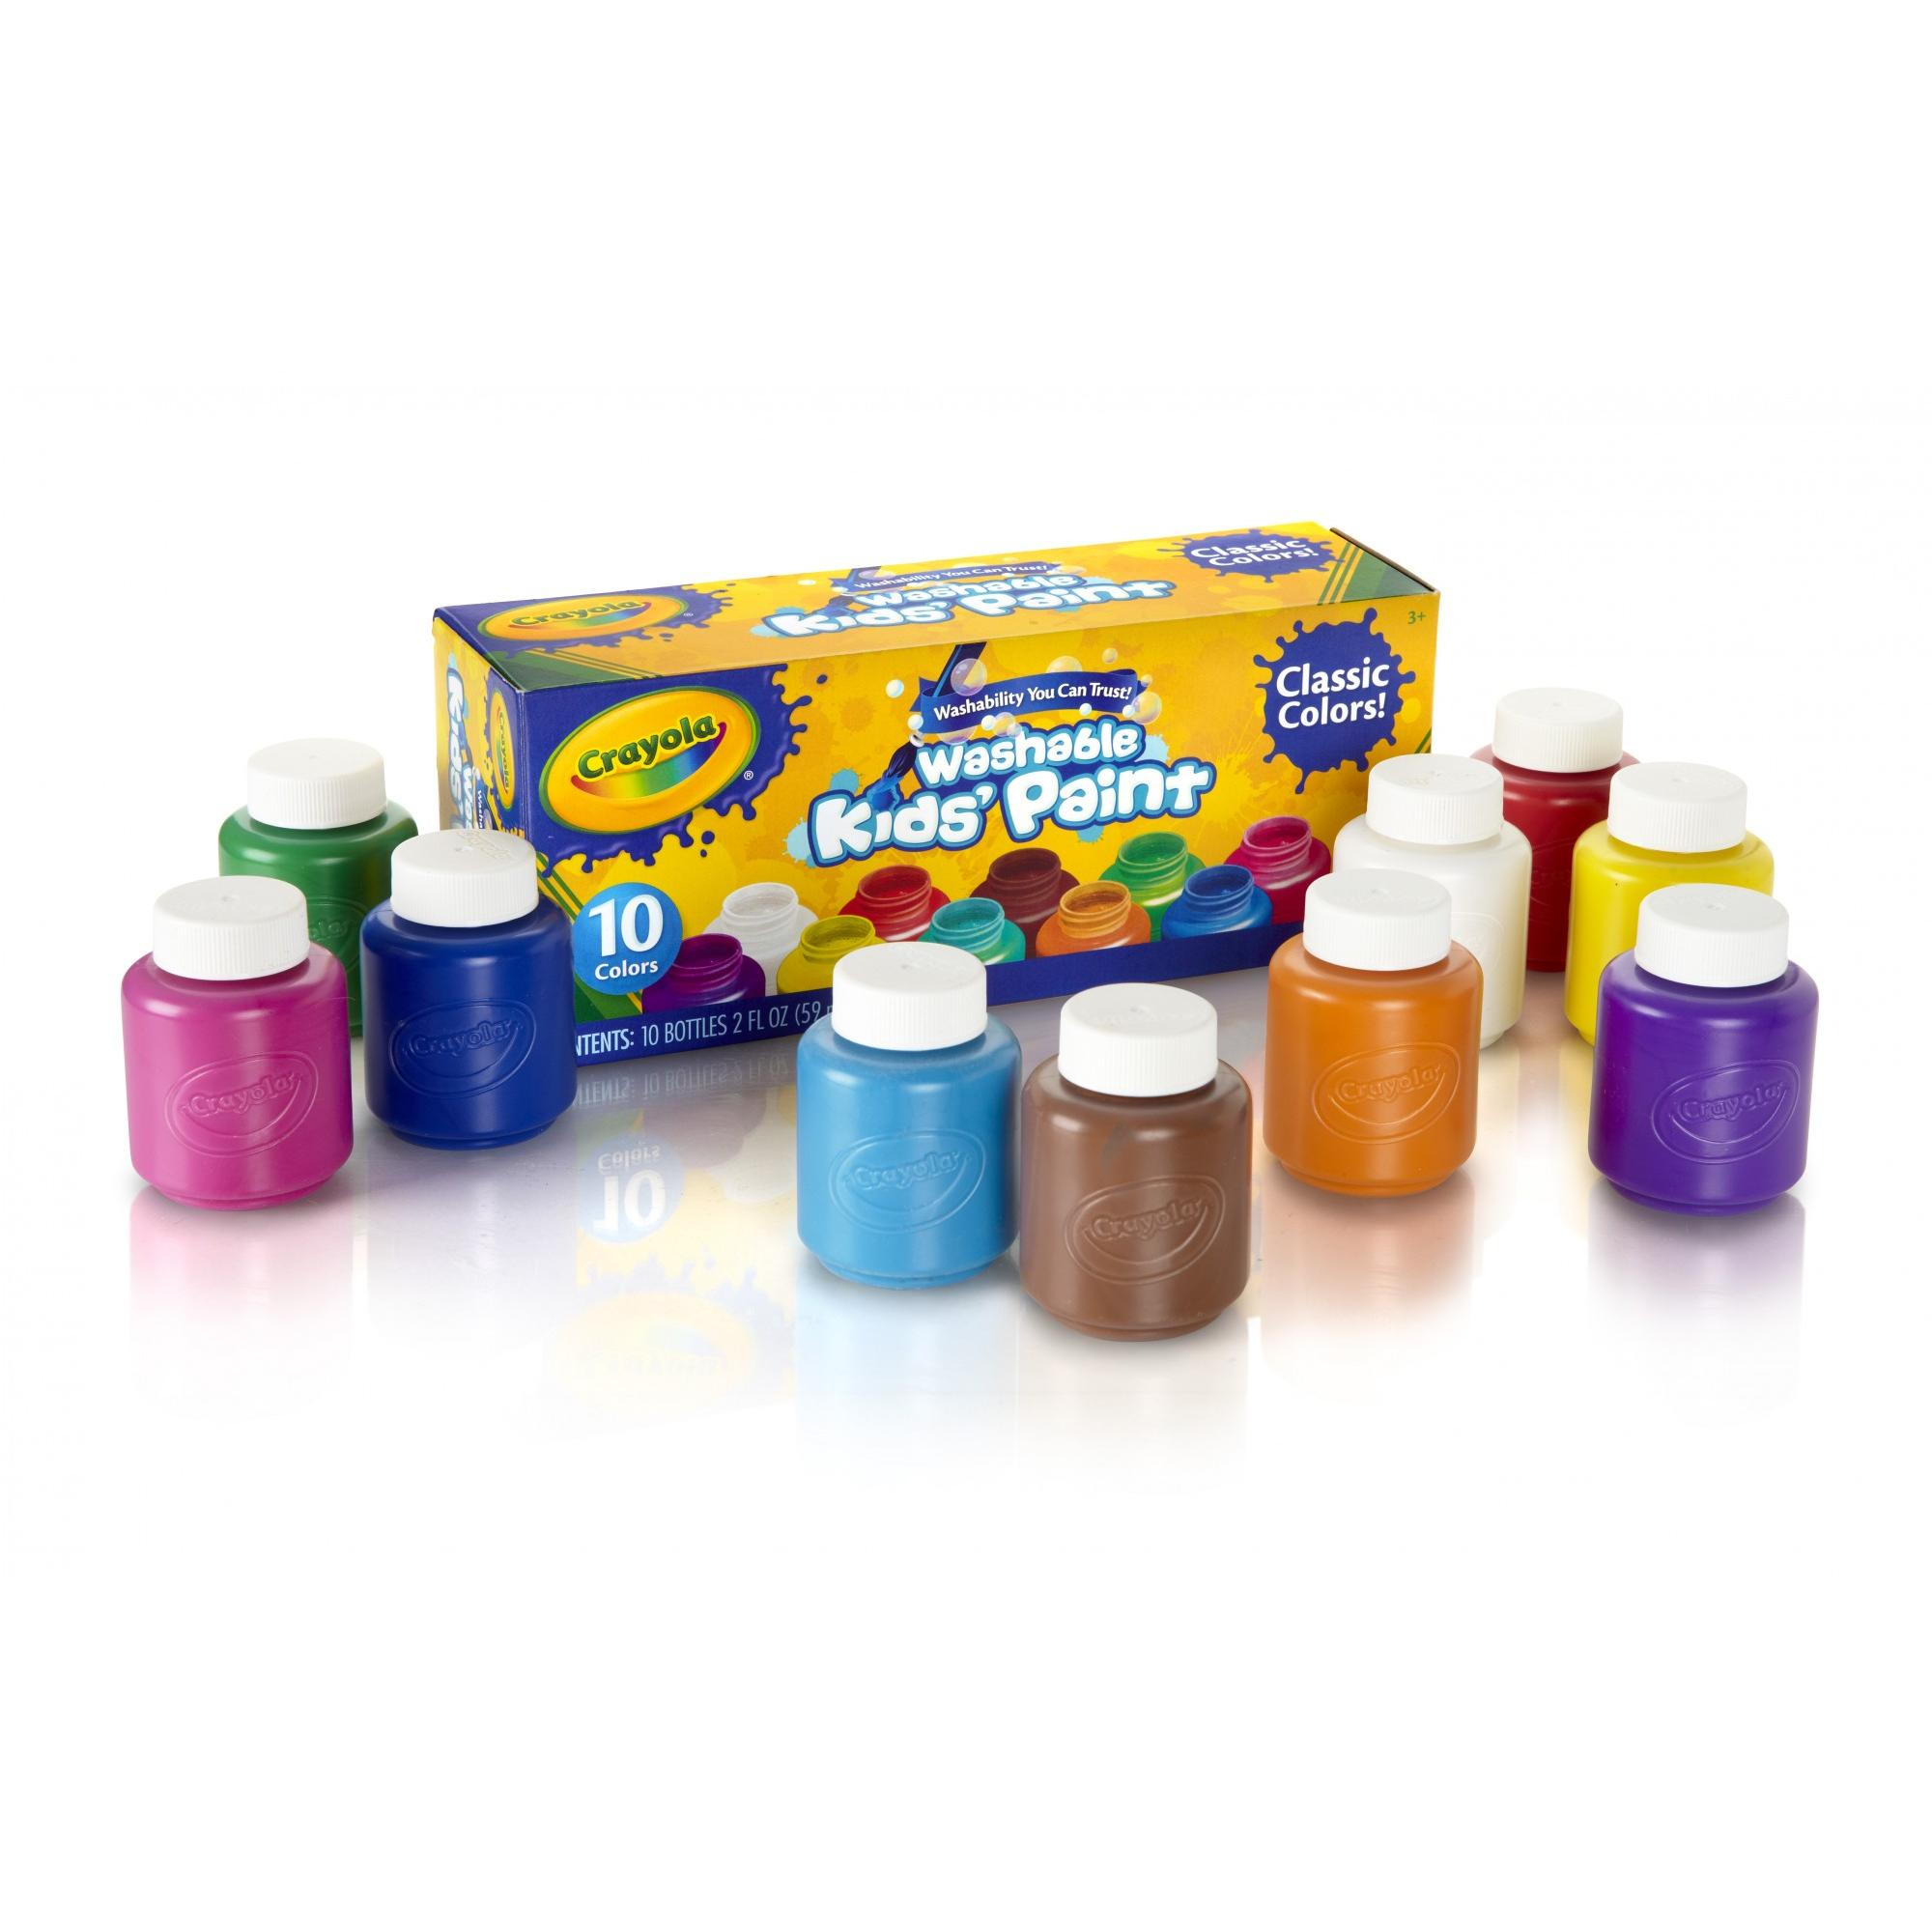 crayola washable kids paint 10 count walmartcom - Kids Pictures To Paint